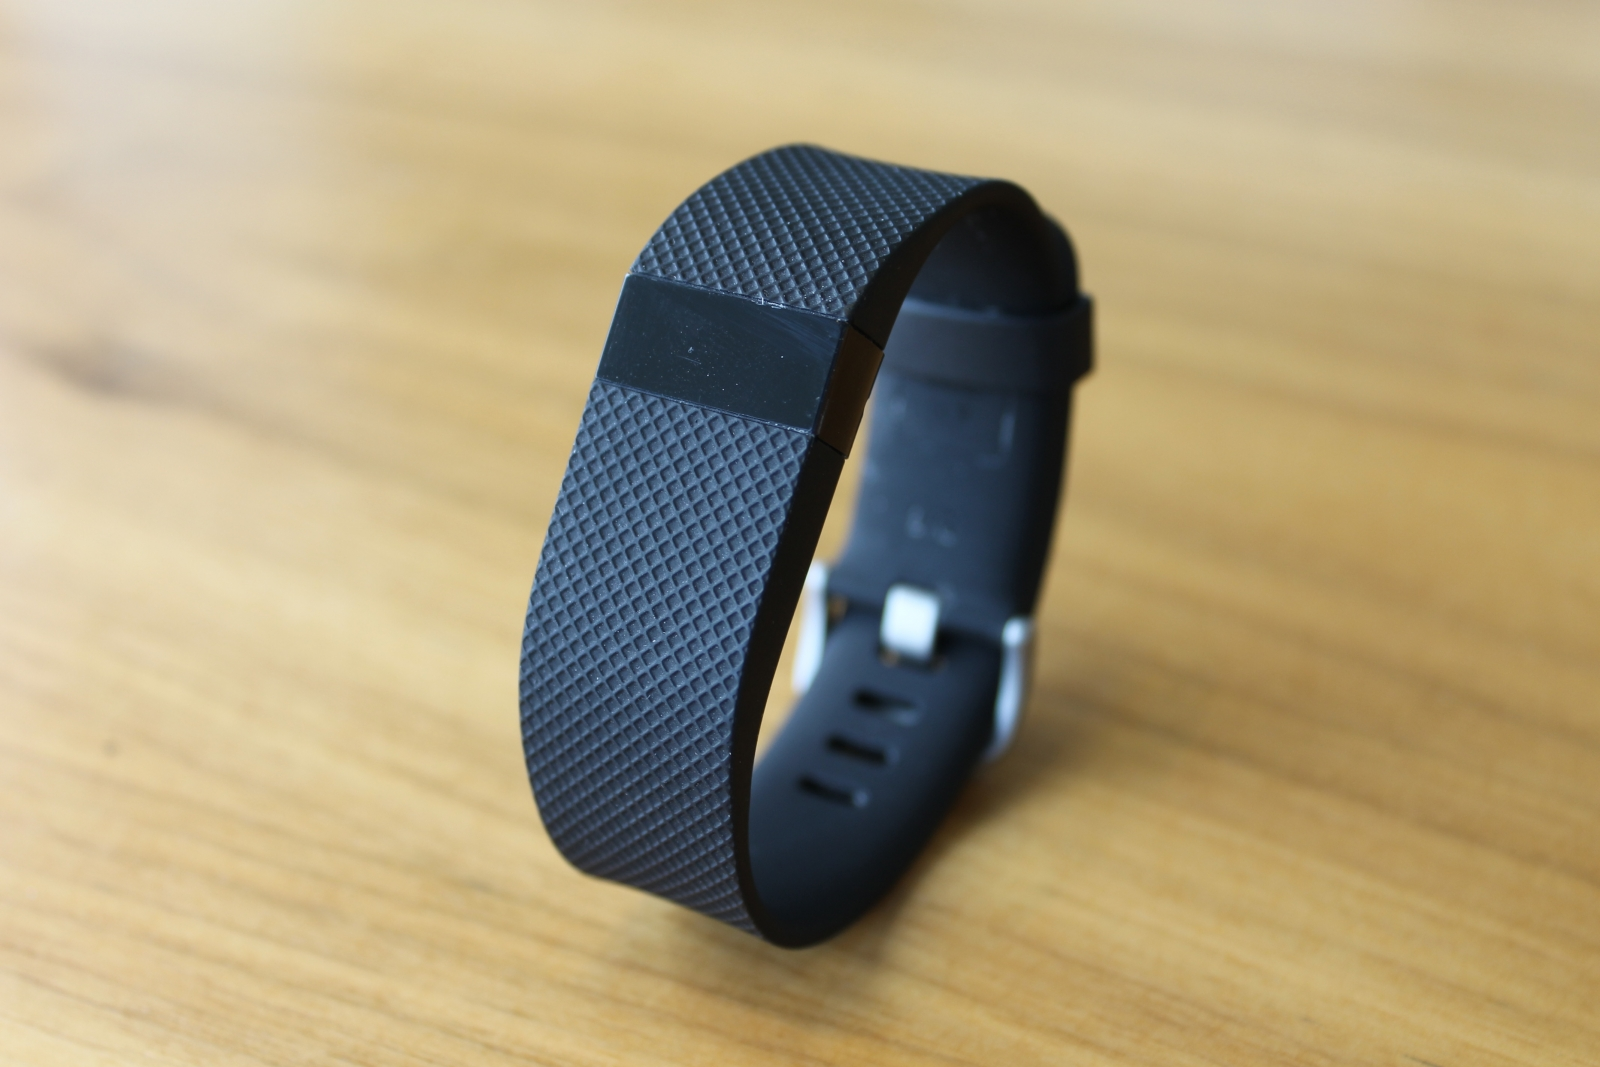 Fitbit $100m IPO